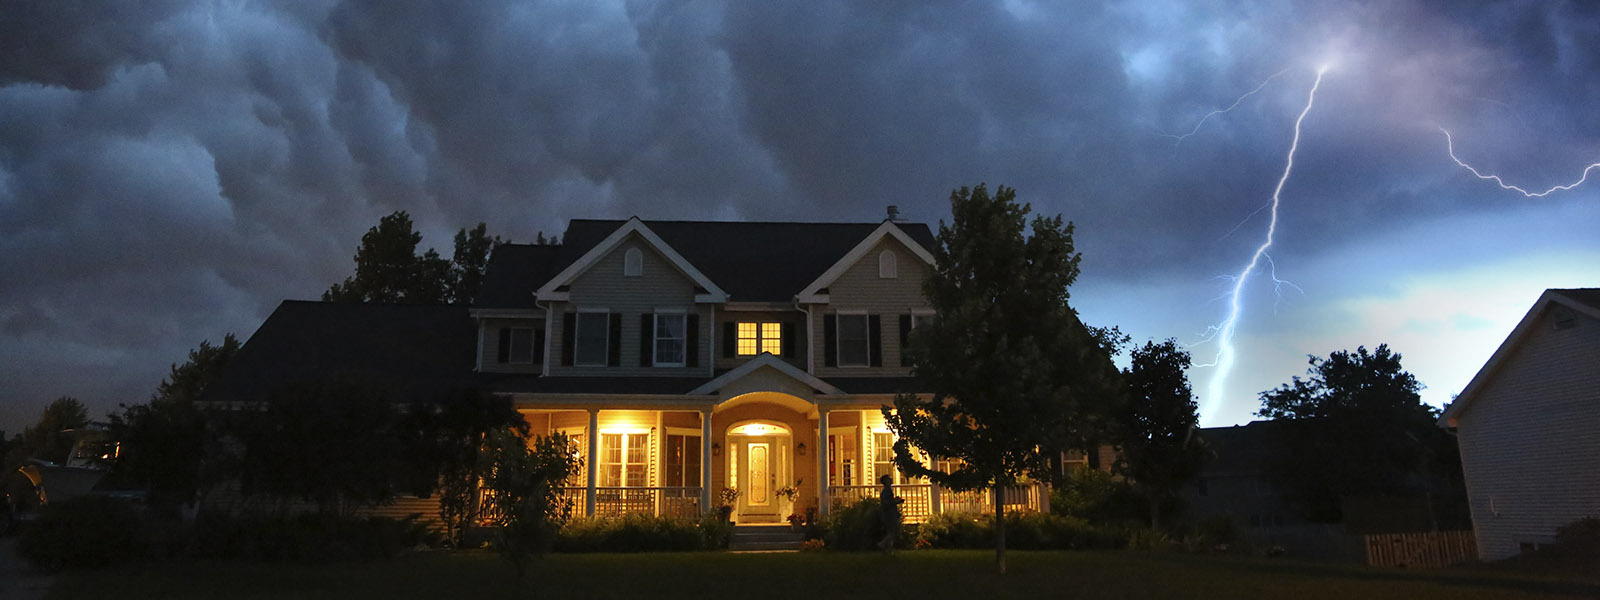 Lightning strikes behind a home